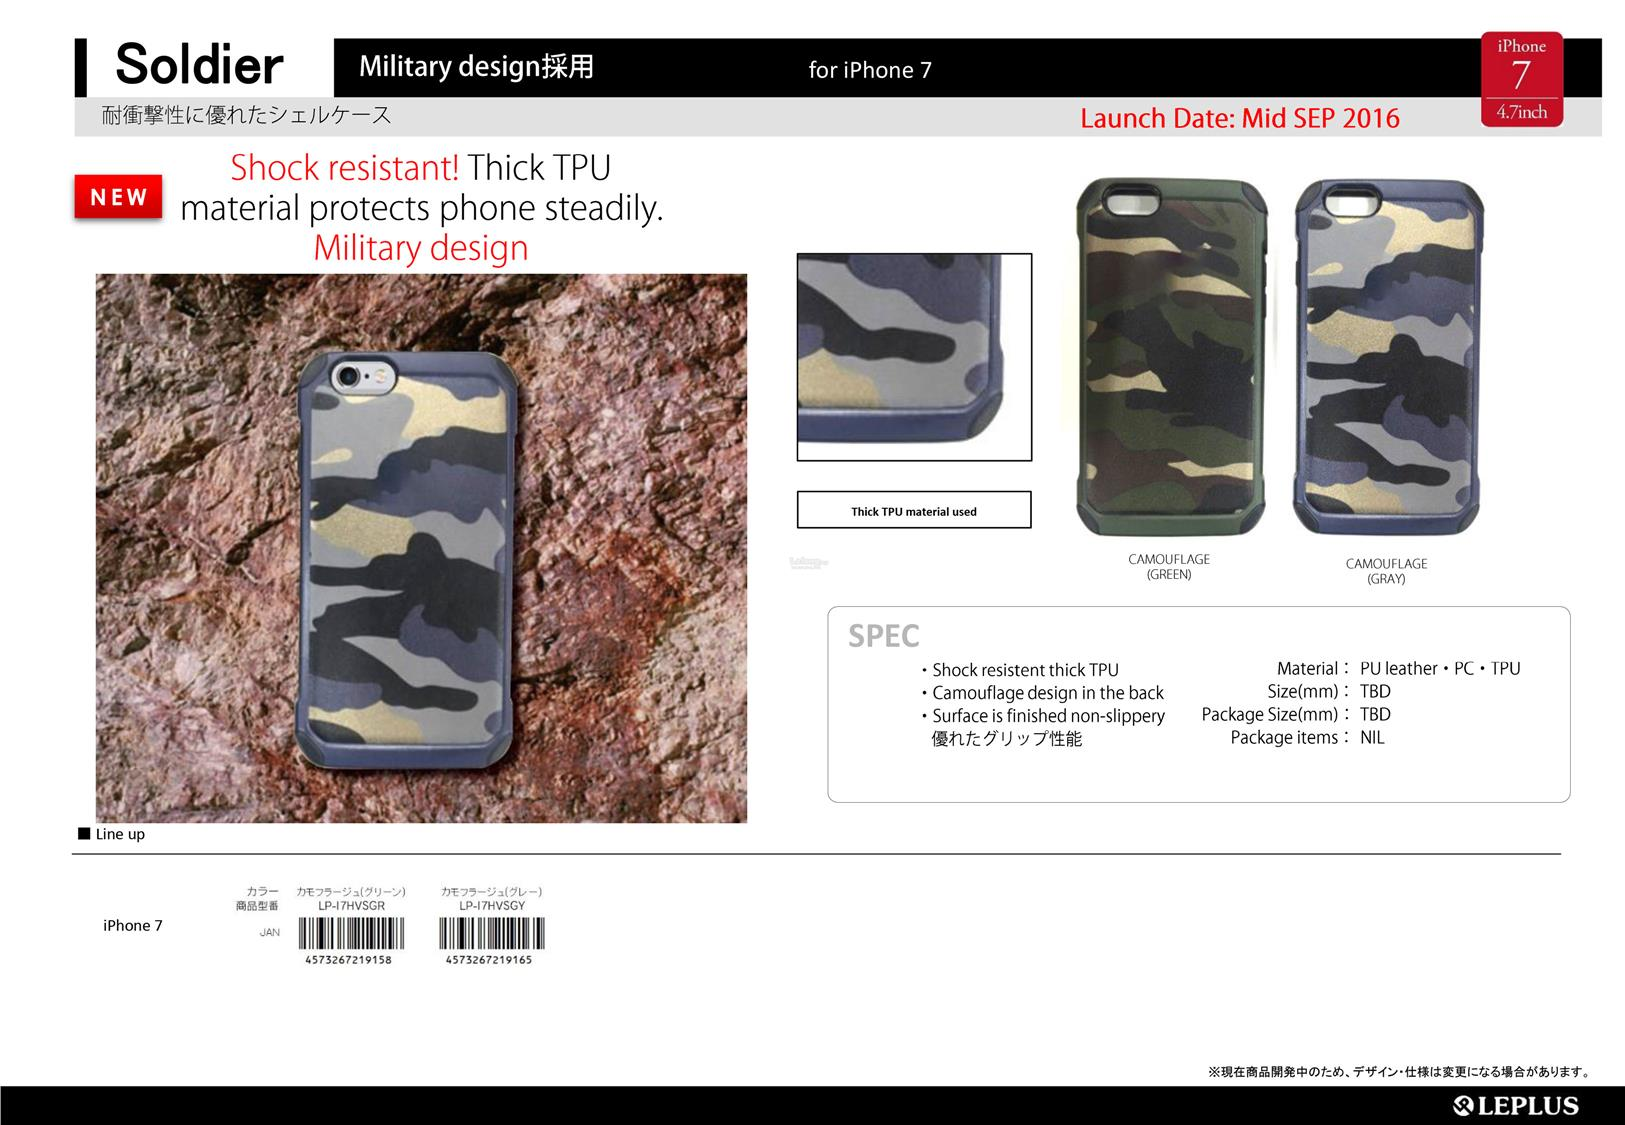 LEPLUS SOLDIER ANTI-SHOCK Camouflage Design Case for iPhone 7